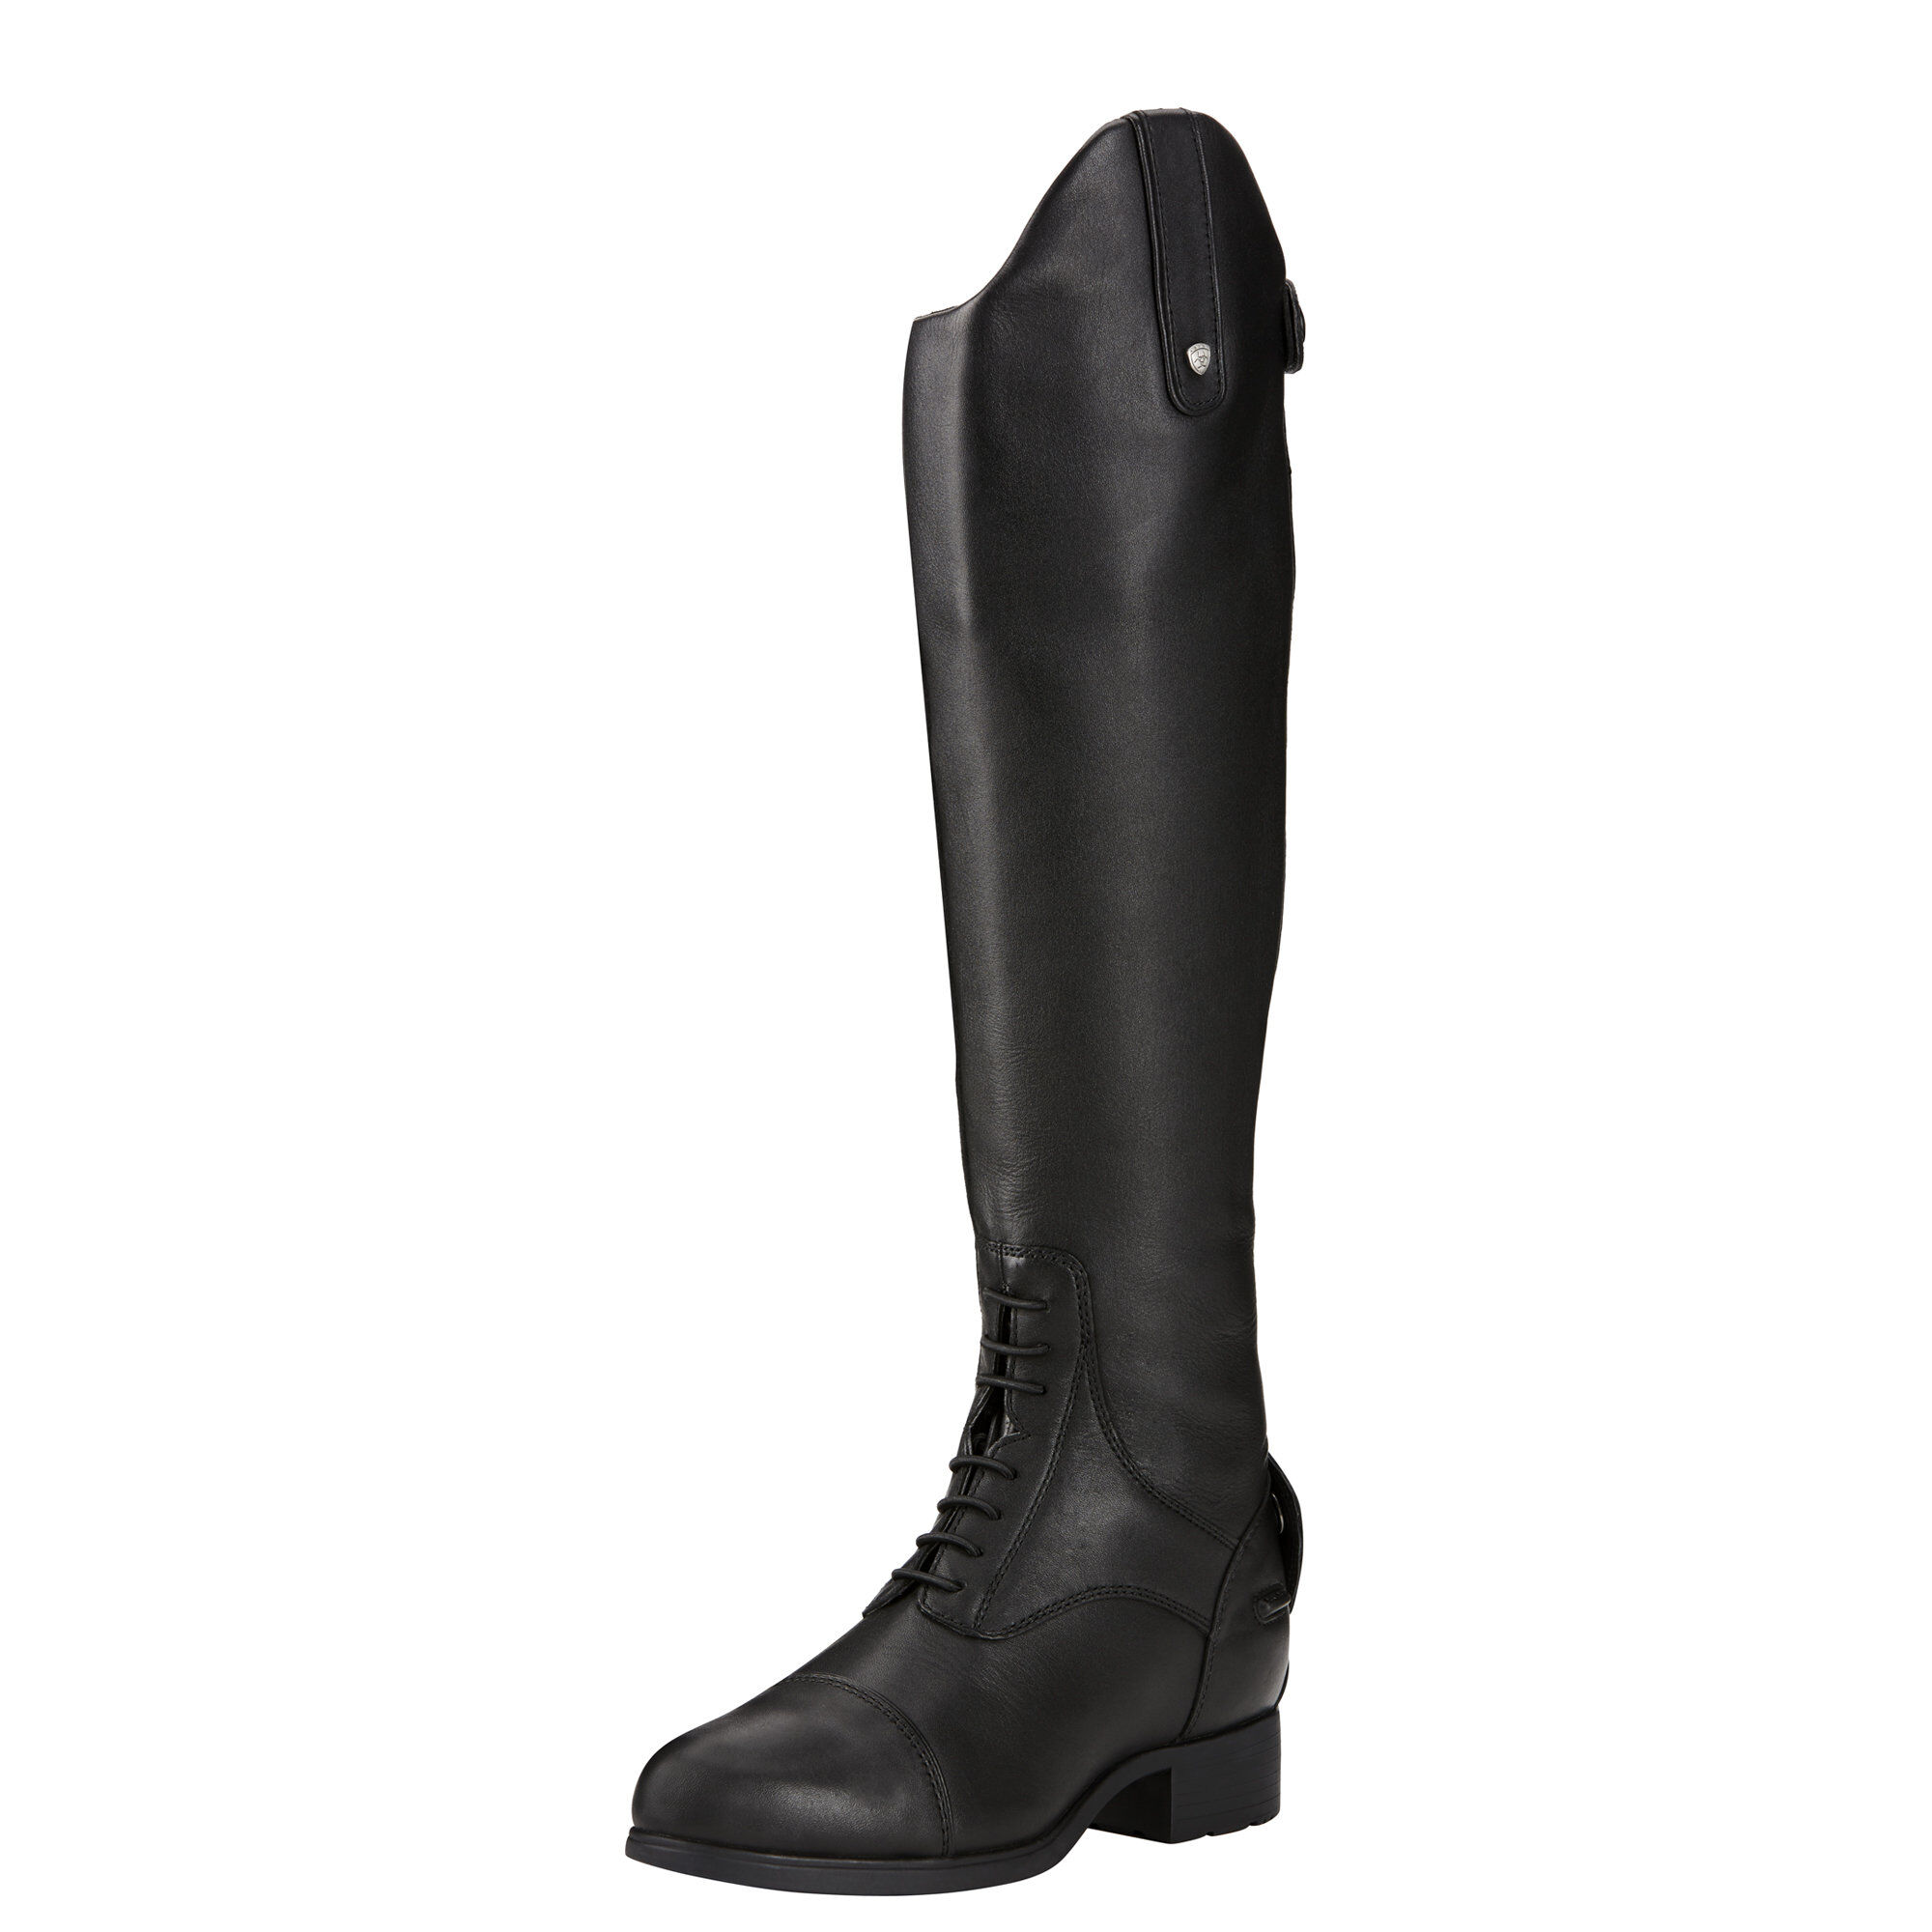 Ariat Long Riding Boots Sale